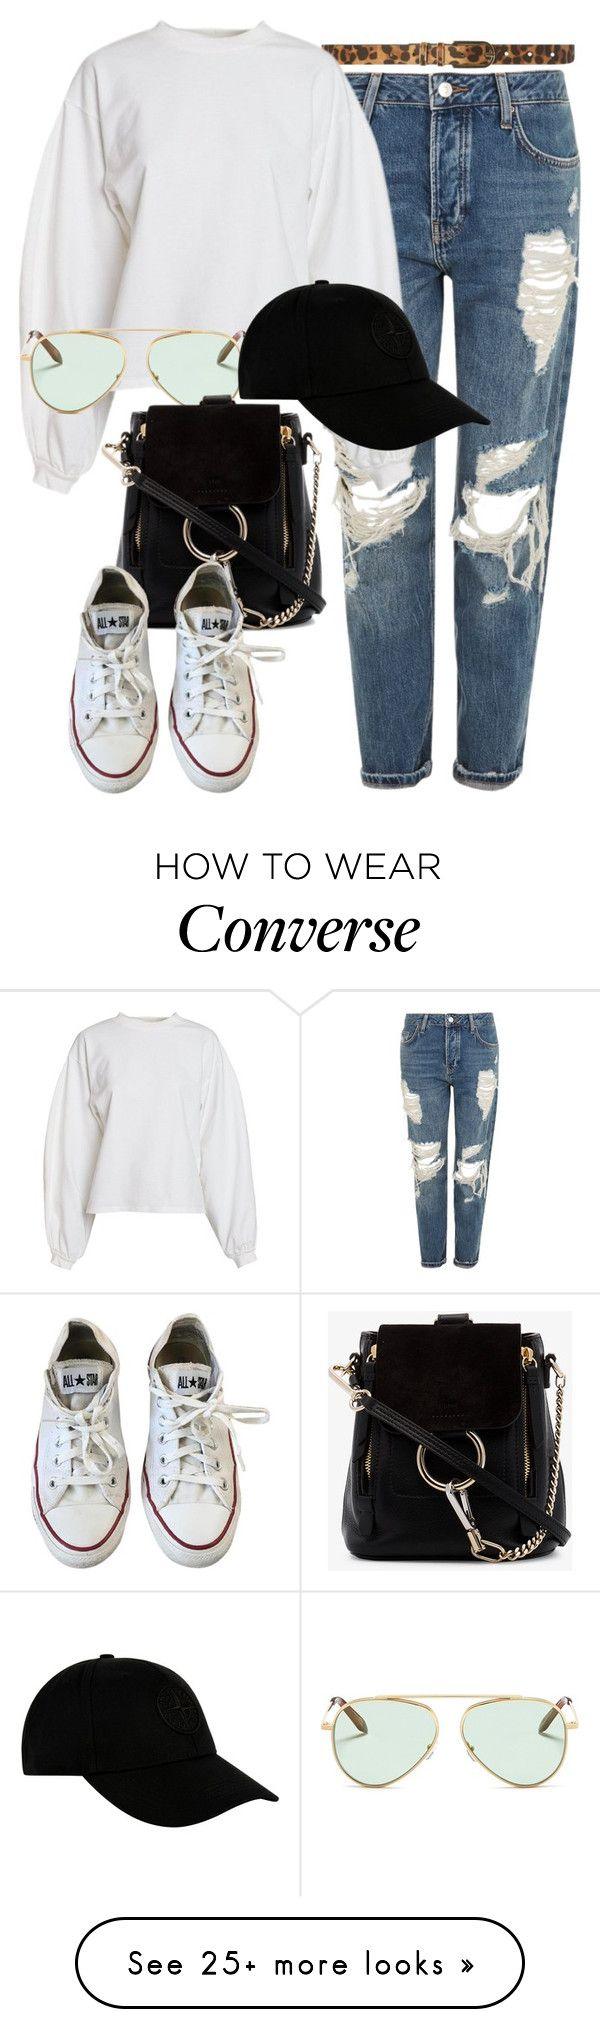 """""""Topshop x Chloe"""" by muddychip-797 on Polyvore featuring Topshop, Dorothy Perkins, NLY Trend, Victoria Beckham, Chloé, Converse, STONE ISLAND, casual, chloe and brunch"""